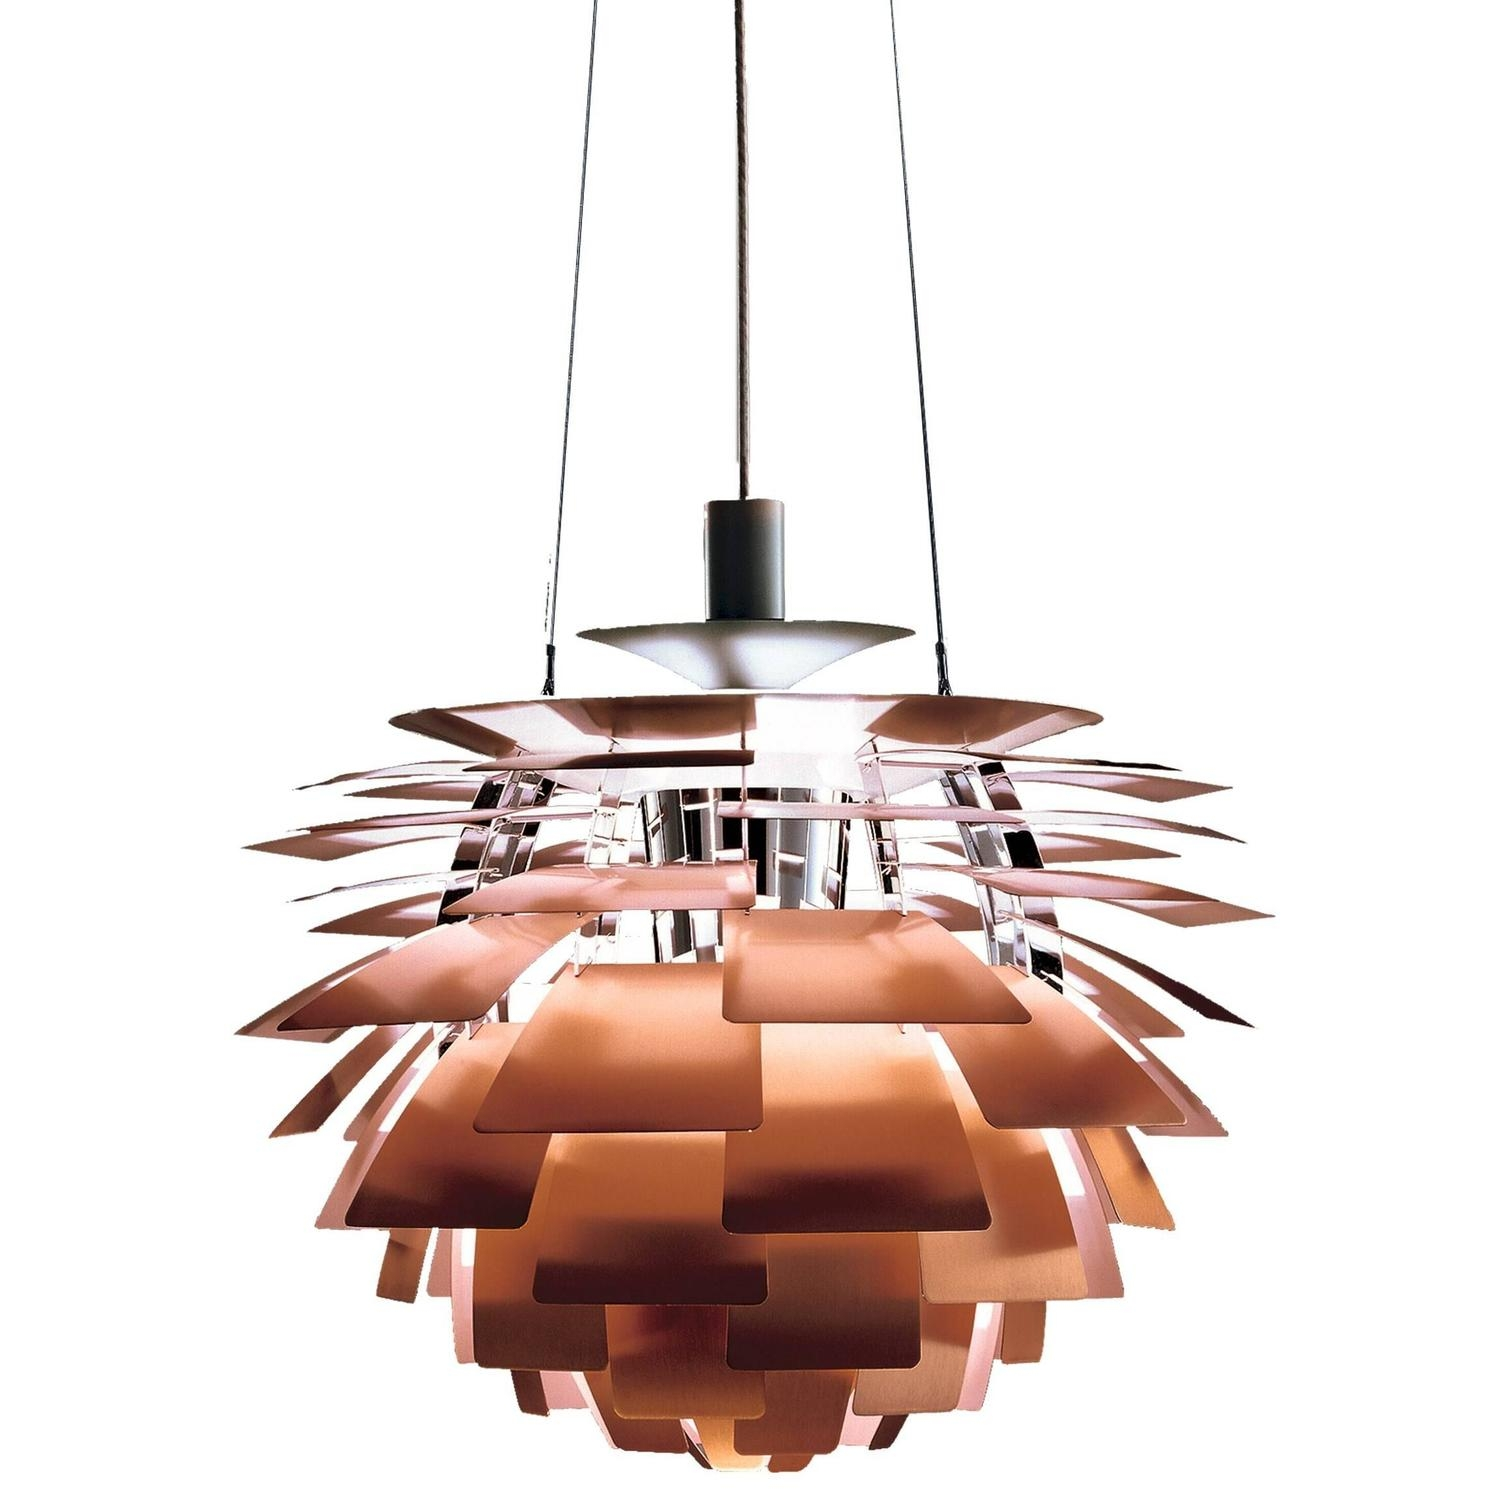 Louis Poulsen Chandeliers And Pendants 205 For Sale At 1stdibs For Copper Chandelier (View 10 of 15)